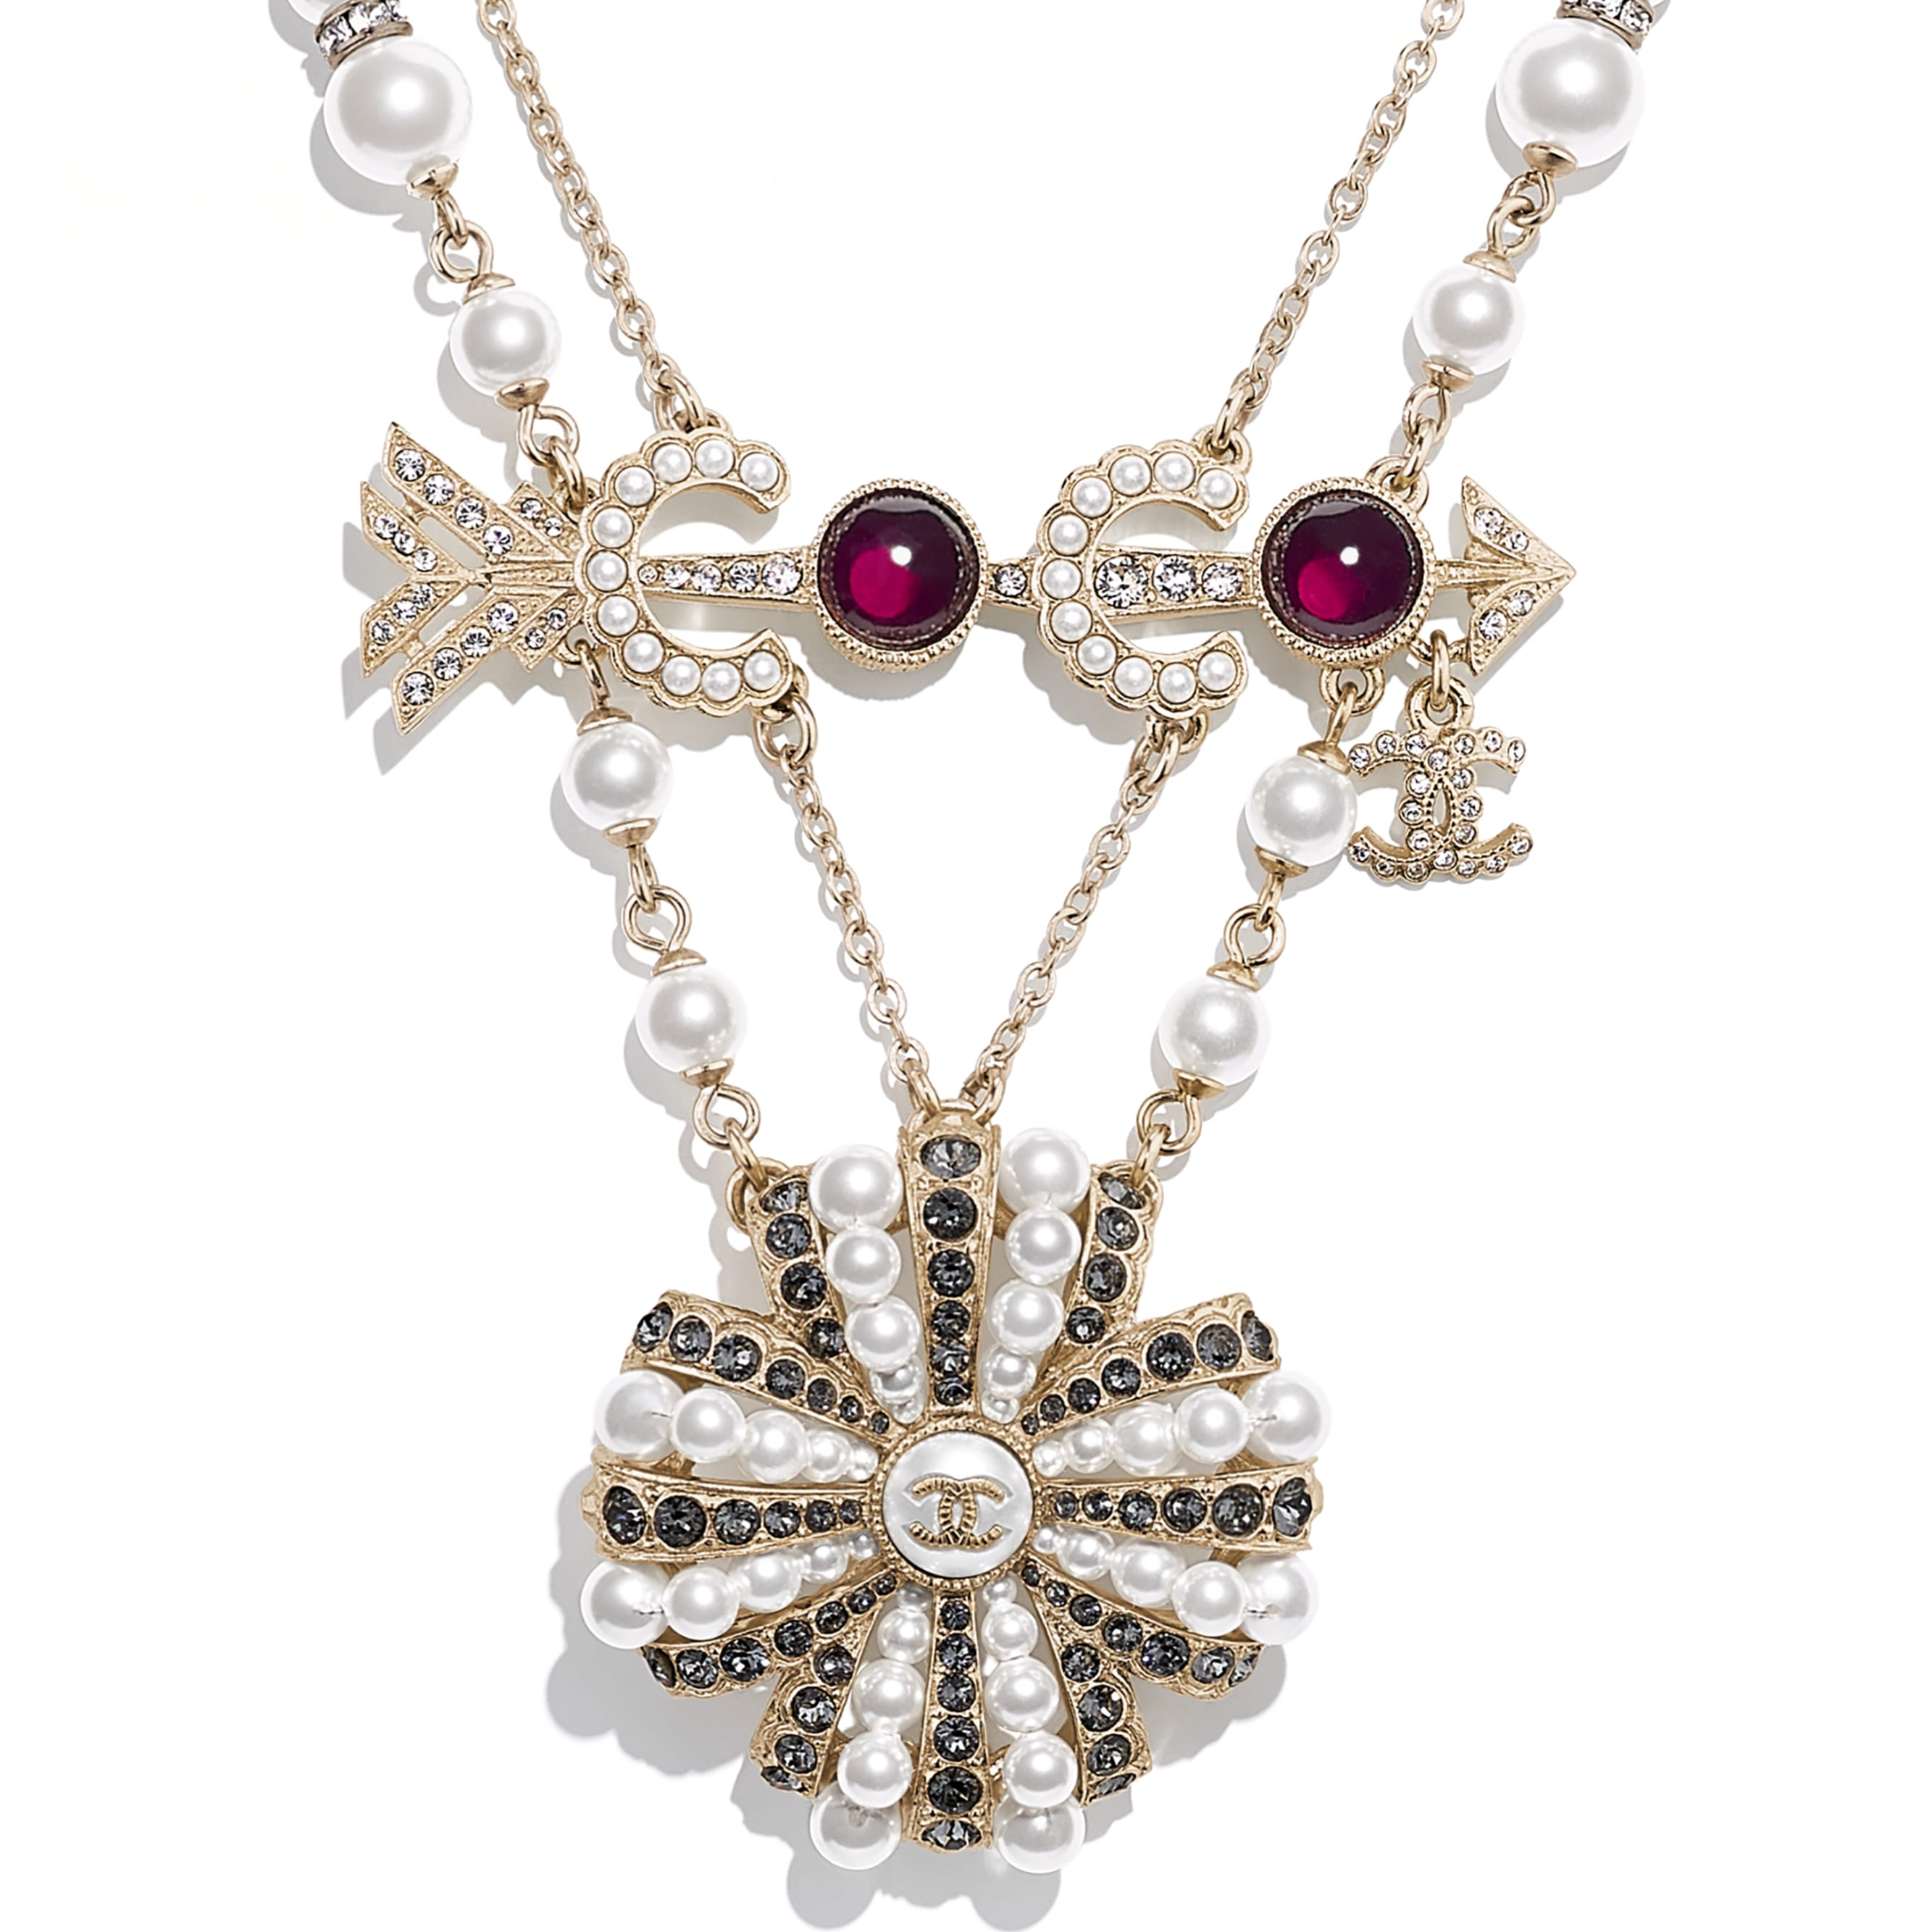 Necklace - Gold, Pearly White, Red, Gray & Crystal - Metal, Glass Pearls, Imitation Pearls & Diamanté - CHANEL - Other view - see standard sized version